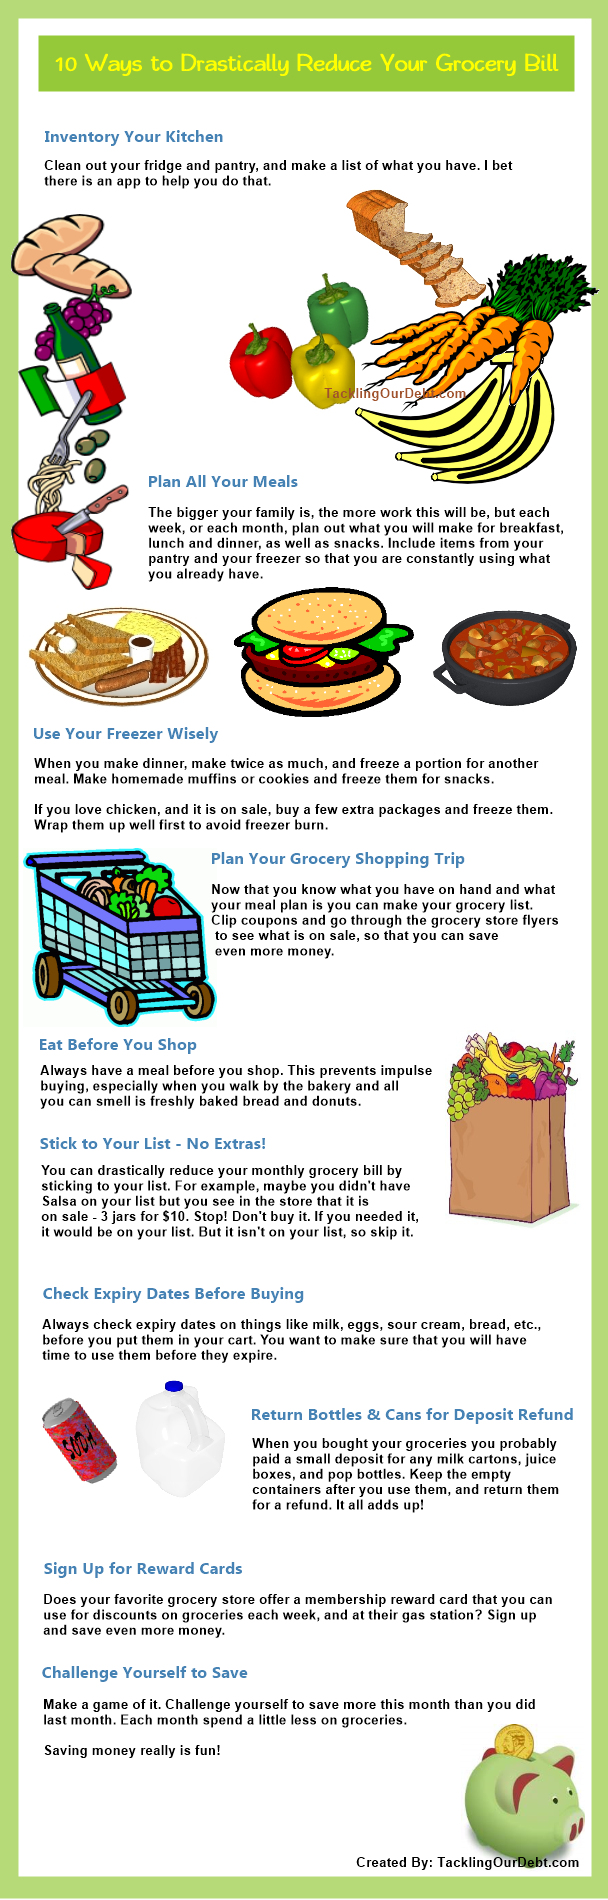 10 Ways to Drastically Reduce Your Grocery Bill